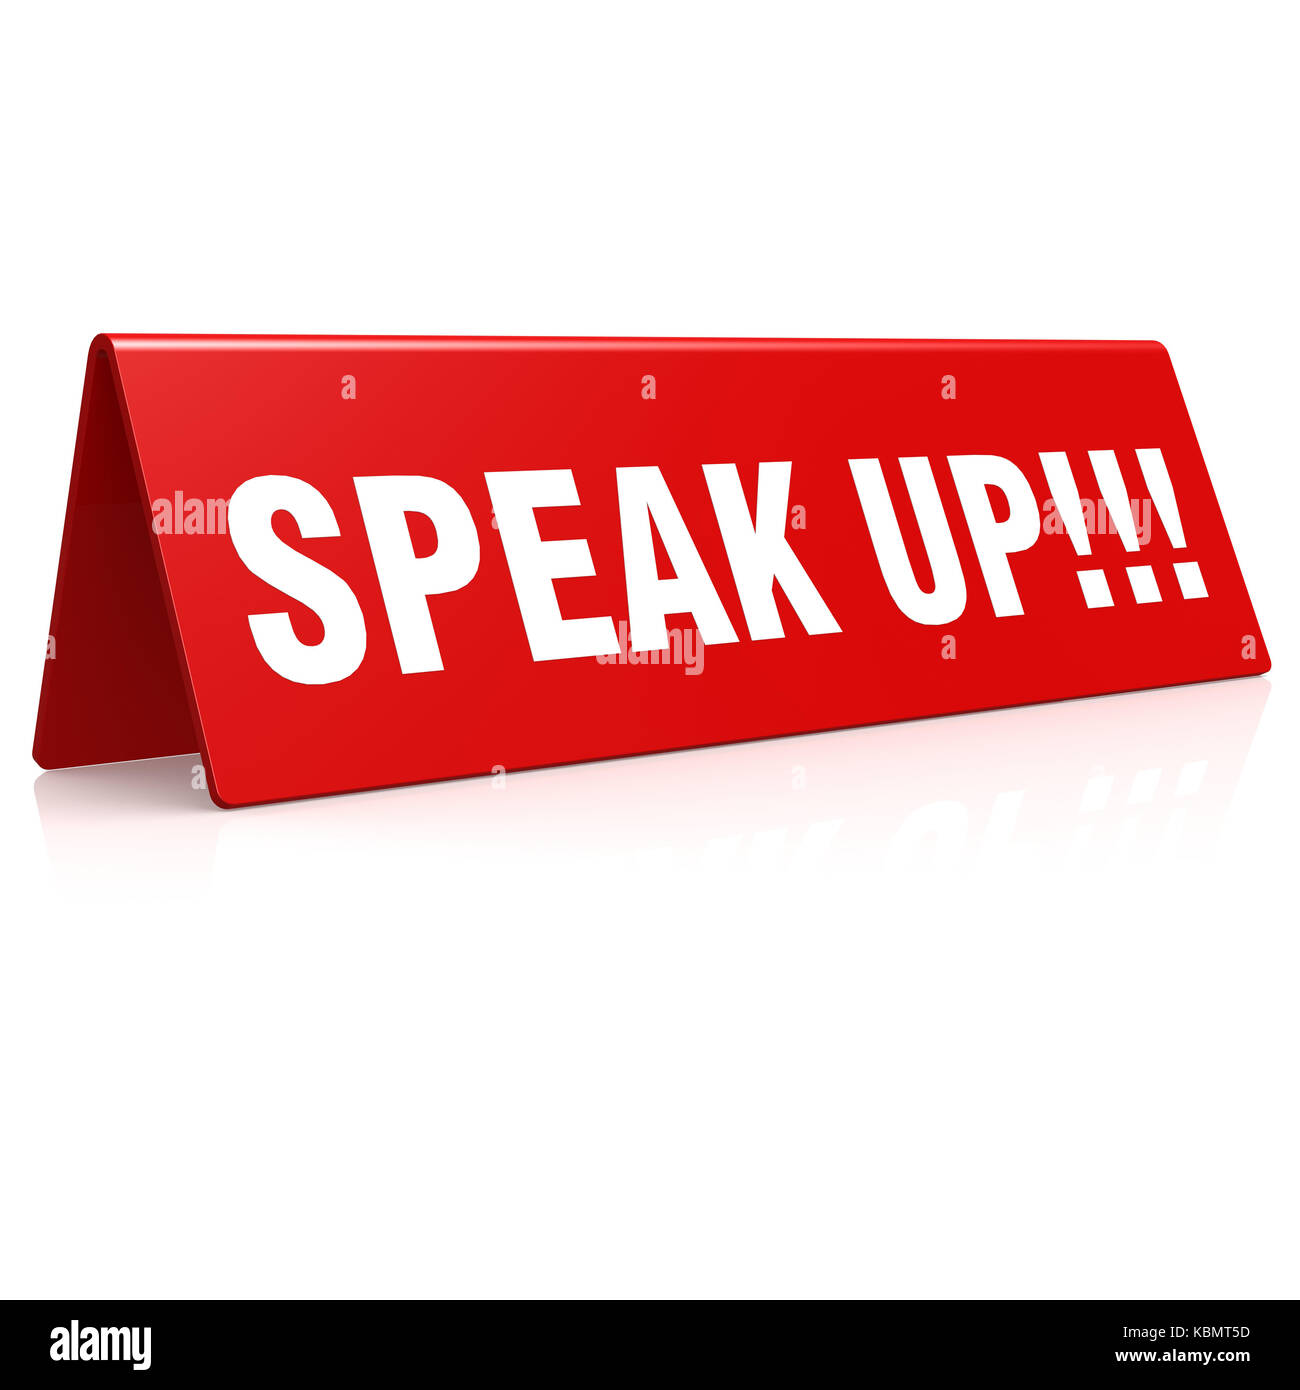 Speak up banner image with hi-res rendered artwork that could be used for any graphic design. - Stock Image